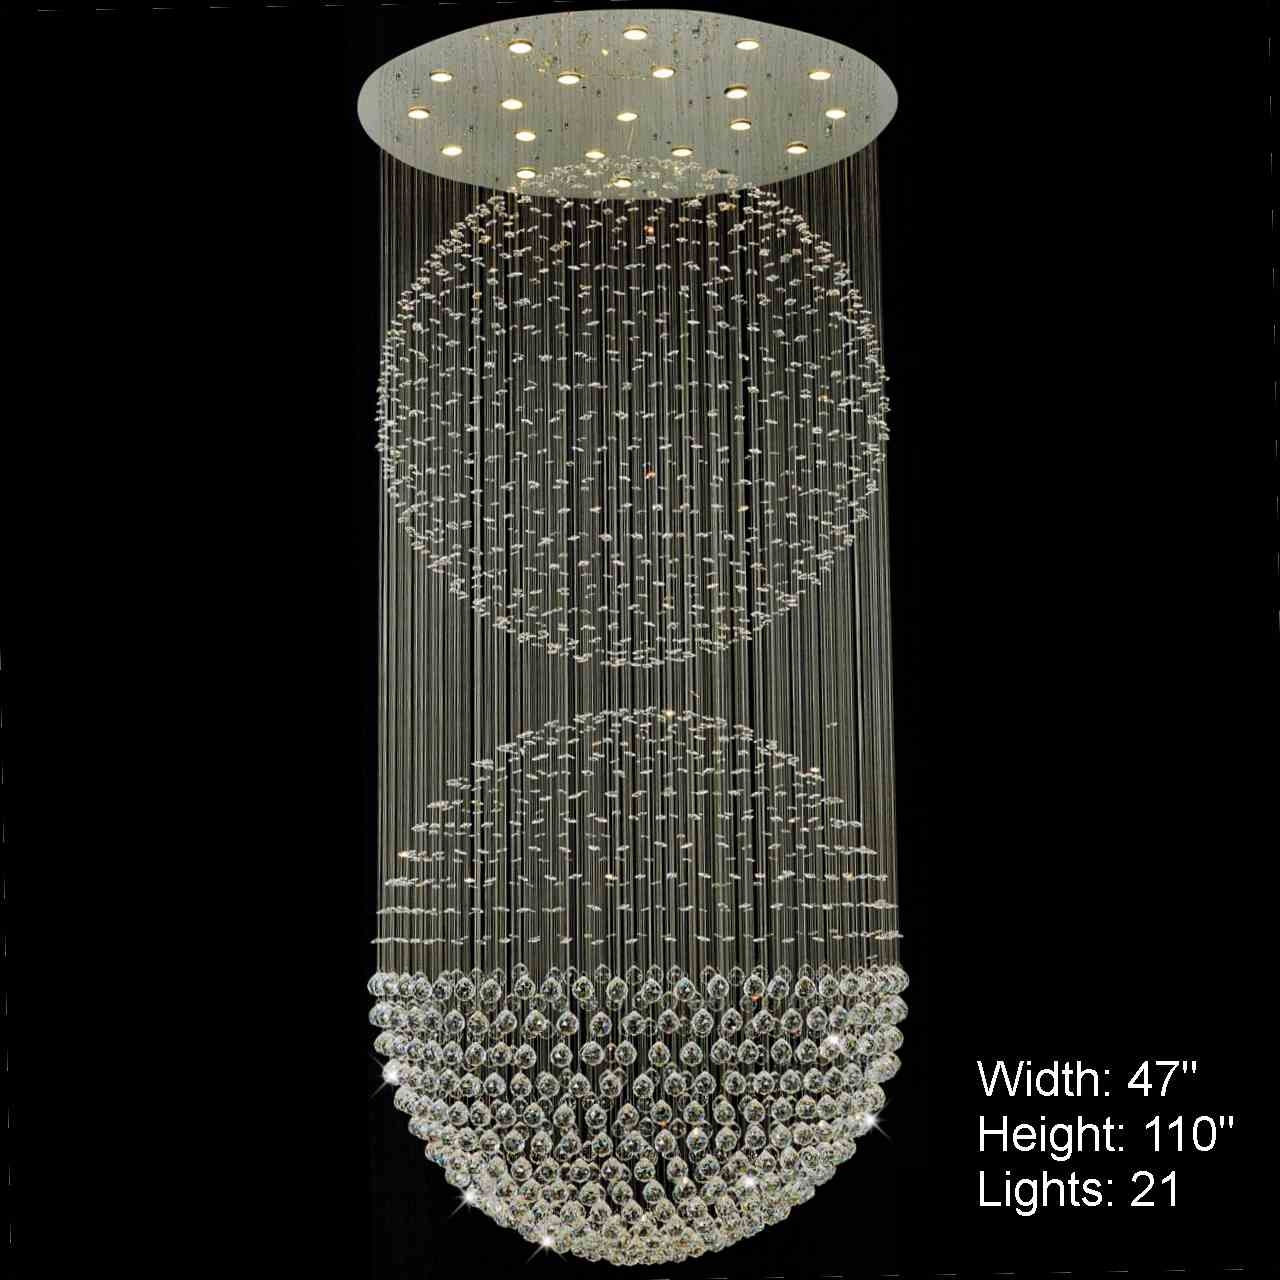 Brizzo lighting stores double sphere modern foyer crystal picture of double sphere modern foyer crystal chandelier mirror stainless steel base 5 lights aloadofball Choice Image